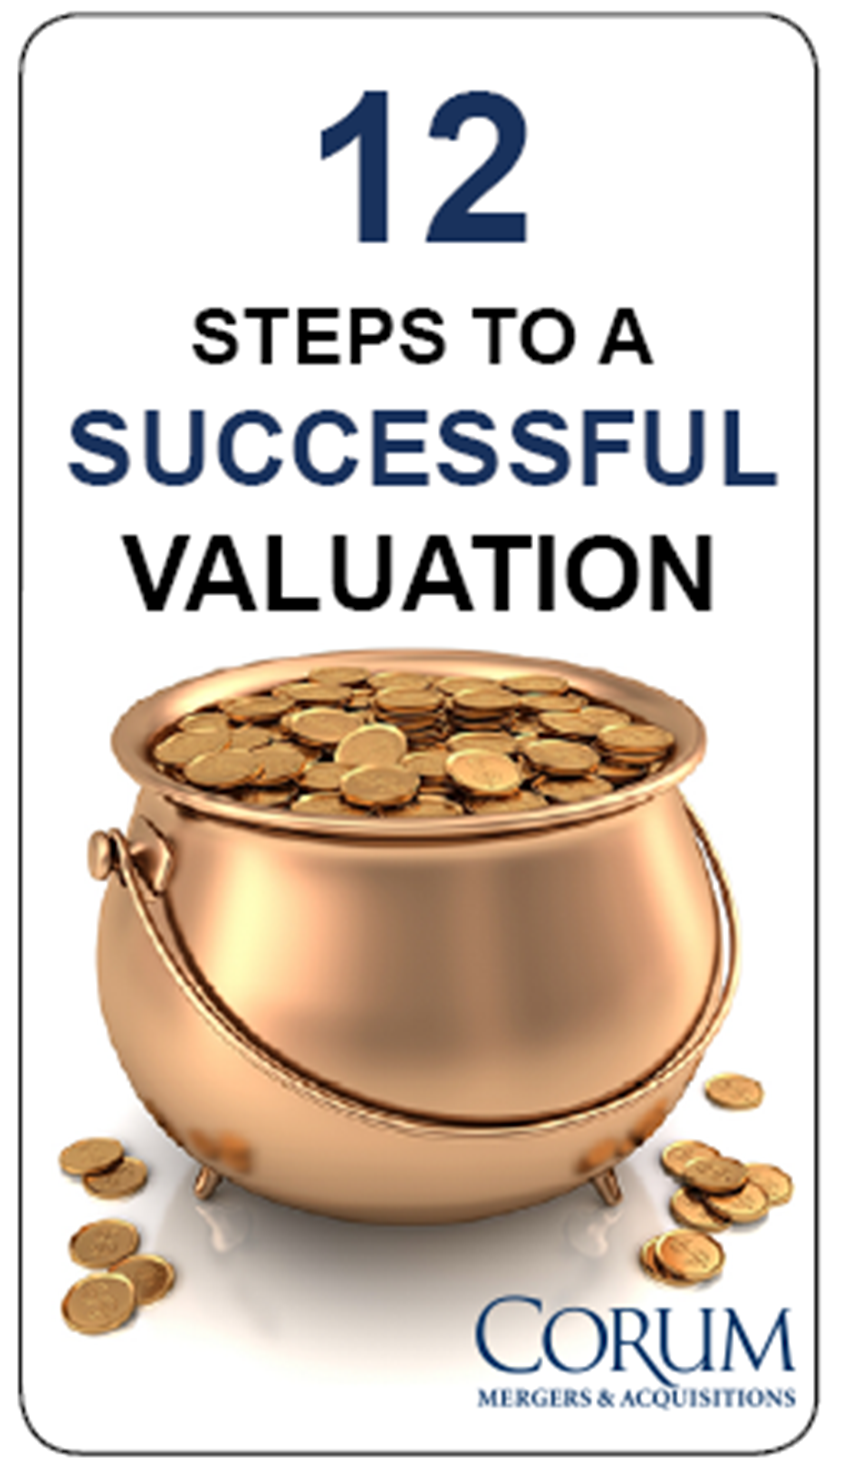 Tech M&A Monthly: 12 Tips for a Successful Valuation #7 & 8